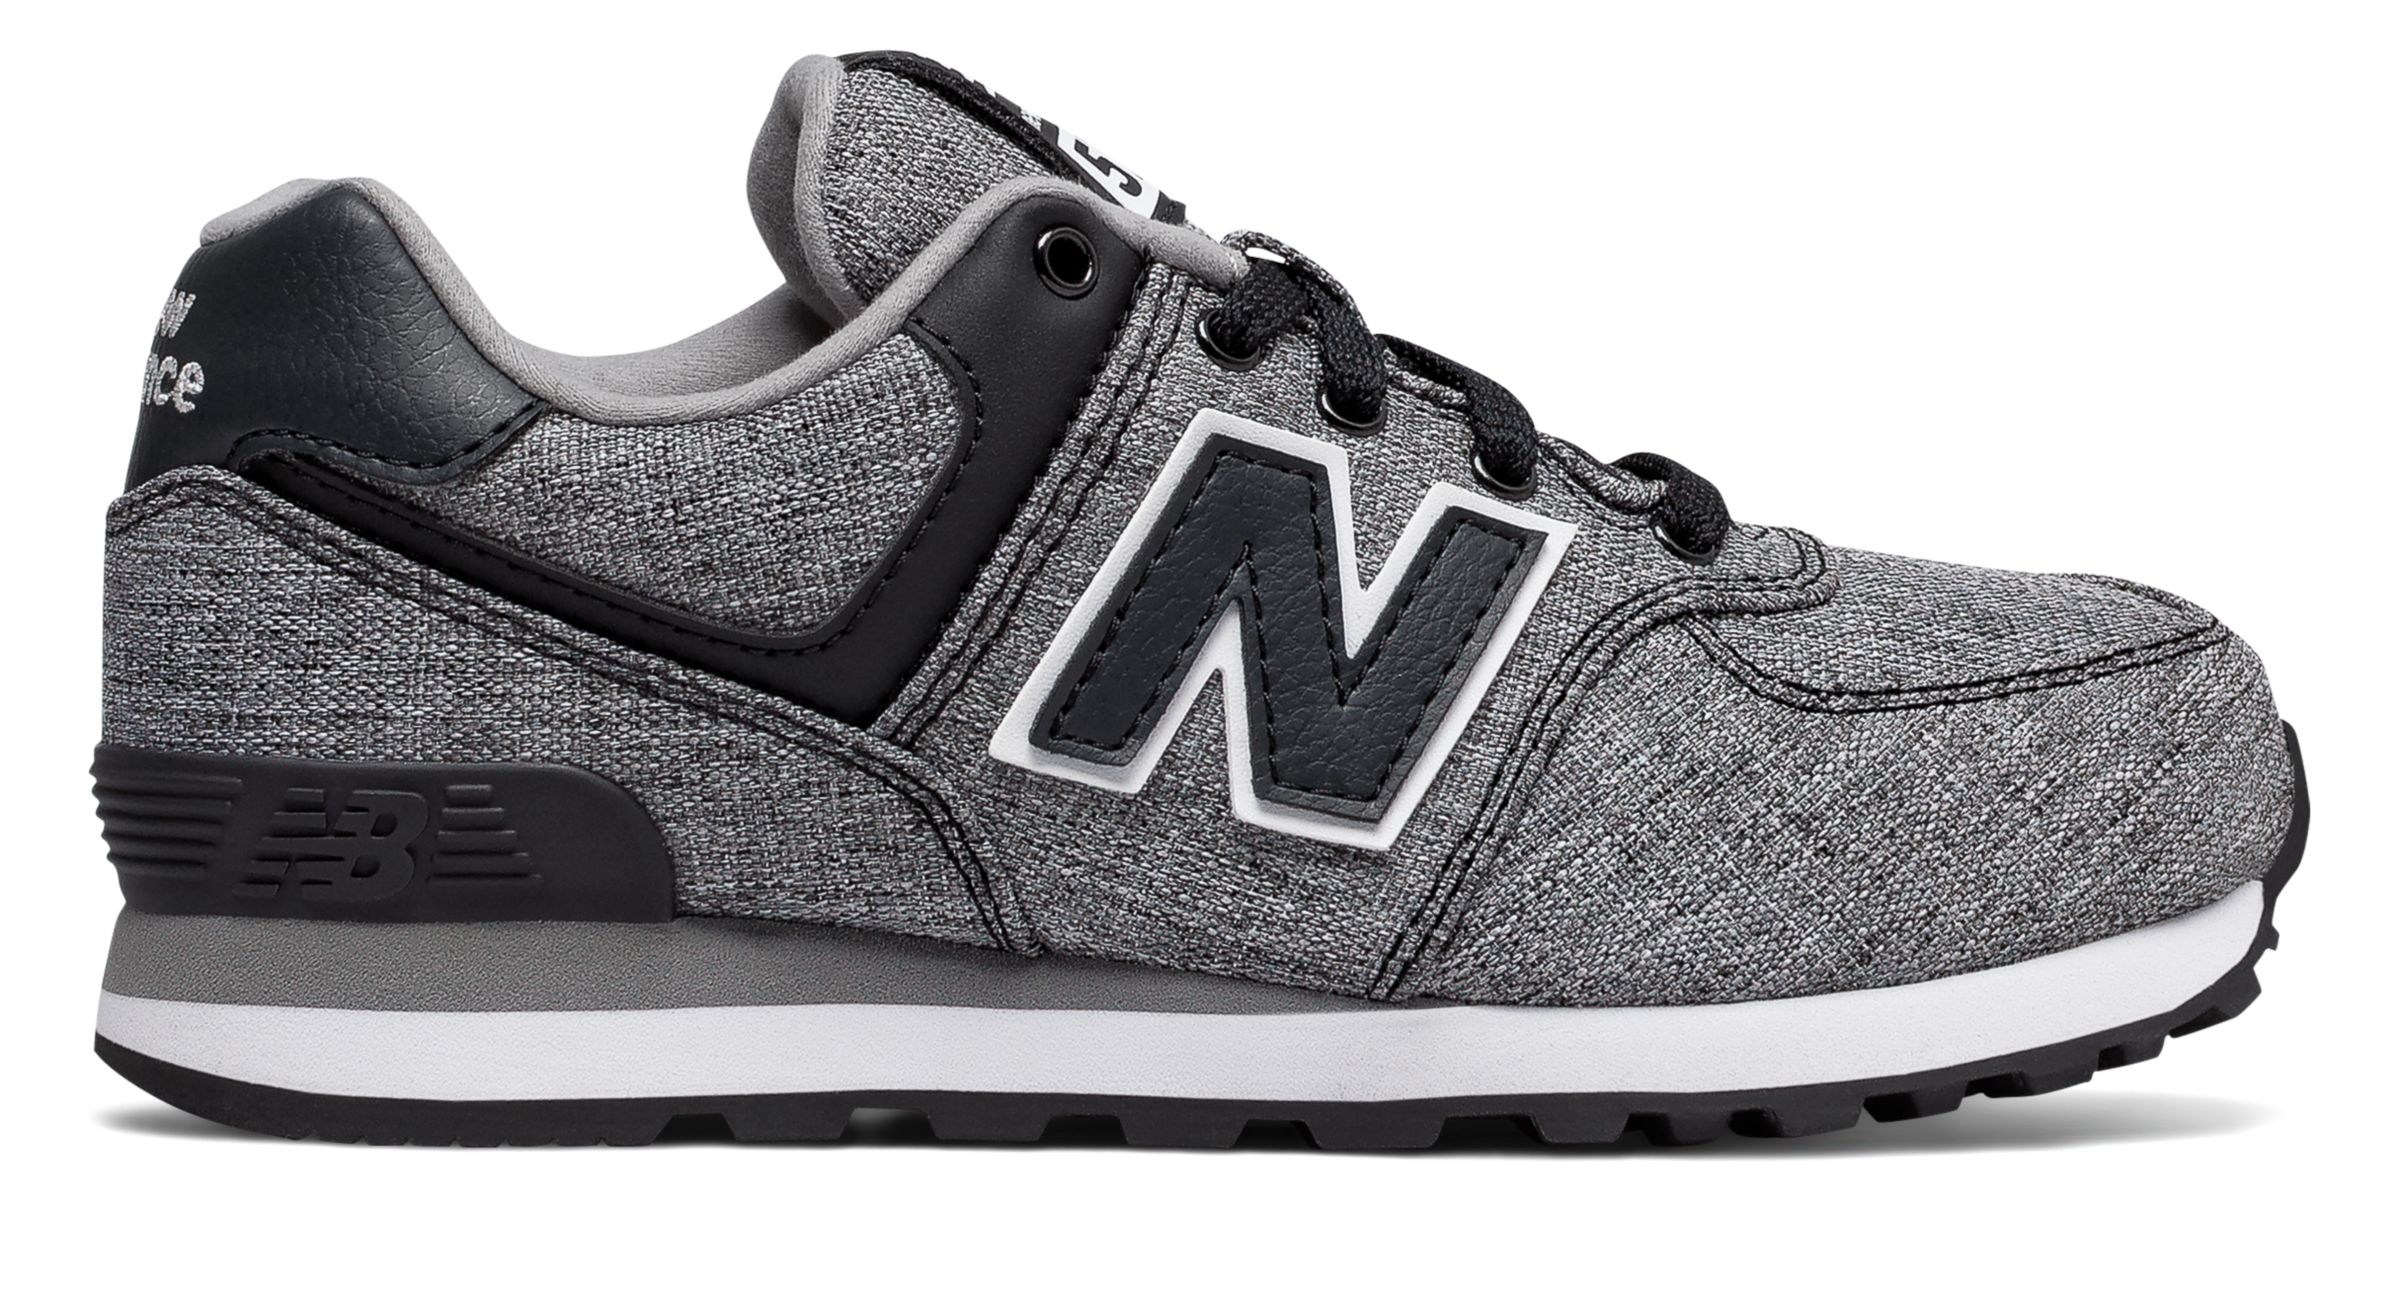 NB 574 Leisure, Black with White